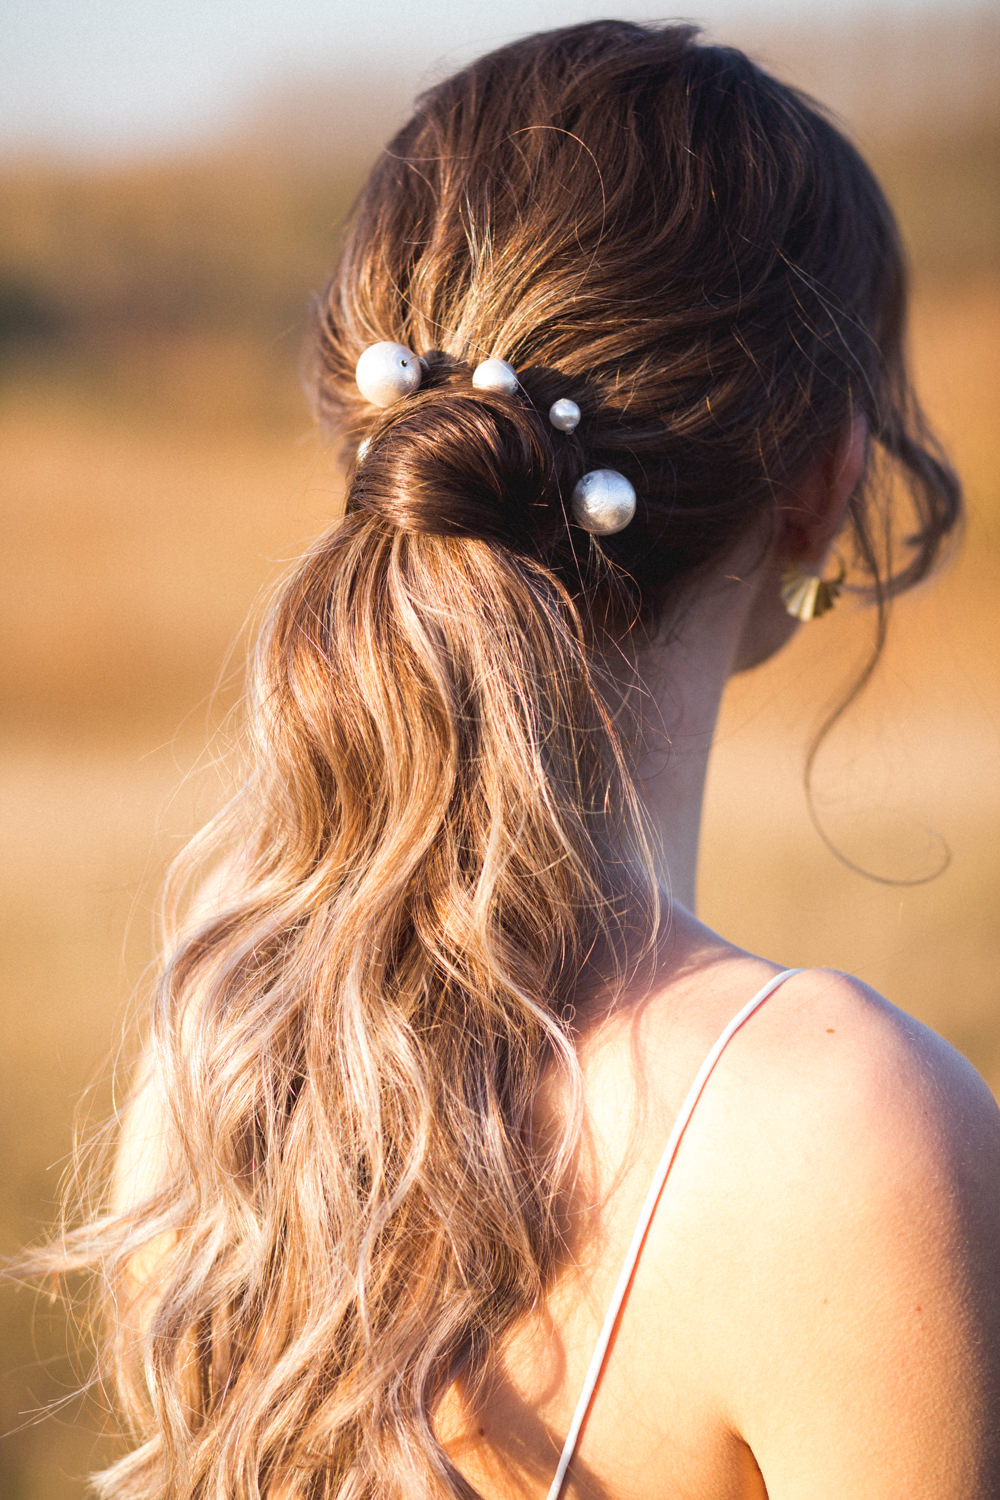 Bride Bridal Hair Style Up Do Pearls Ponytail Dried Flower Wedding Ideas Dan Lambourne Photography